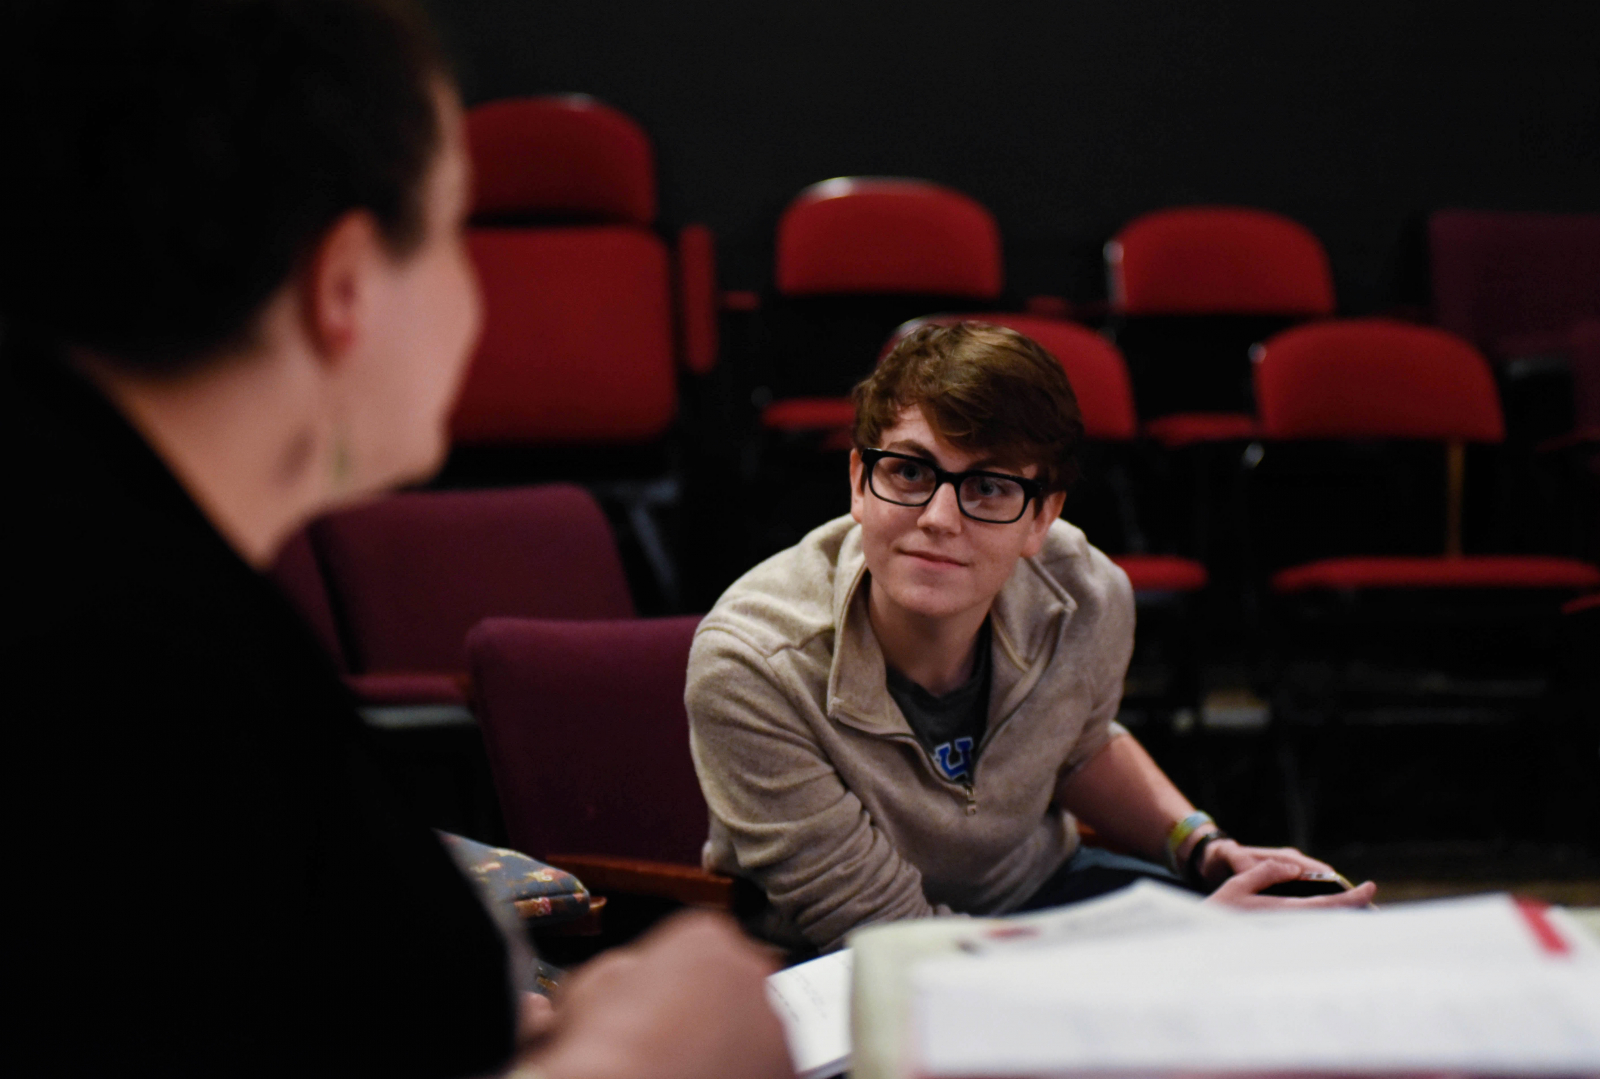 Playwright Jaimie Gaskell sits in on a rehearsal for a play she wrote as it's performed by students in the Summer Stage Young Acting Company program at theREP in Albany Thursday, July 27, 2017. Gaskell has been one of the winners of the Young Playwright Contest for the last three years.